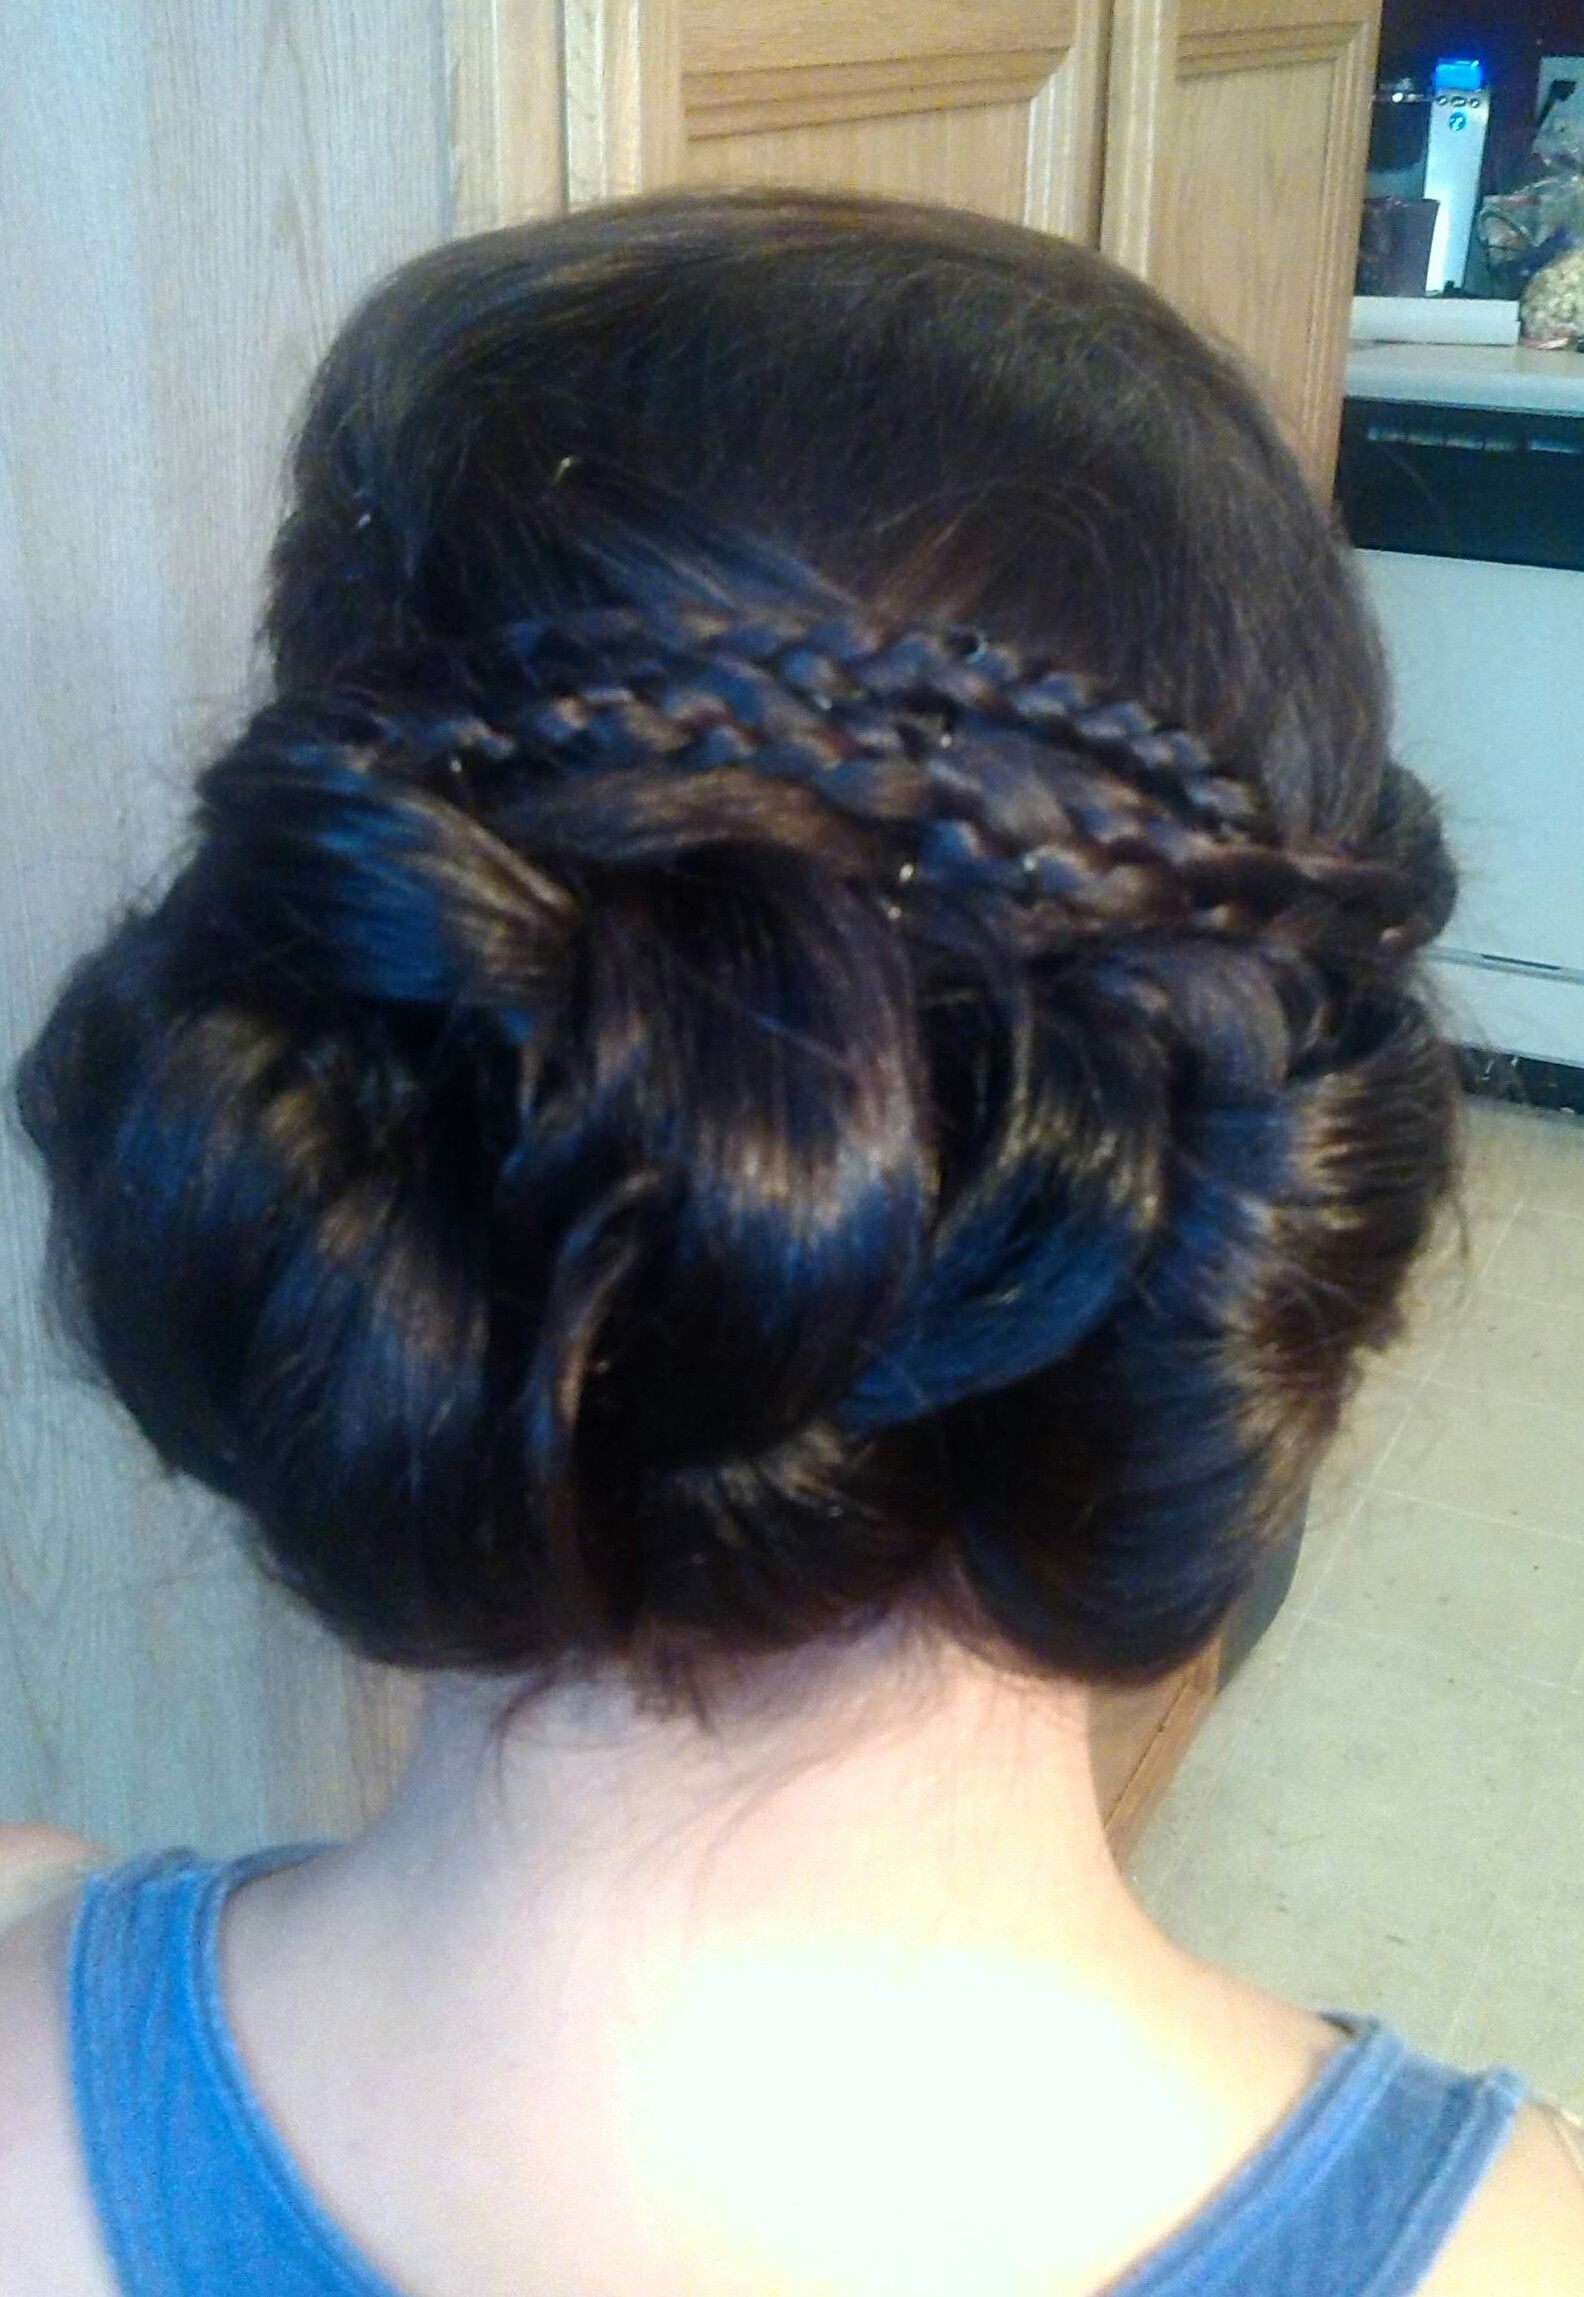 Updo using 3 loose buns. Great for bridal, wedding party, prom, special events, holiday hair. By, https://m.facebook.com/profile.php?id=1401180003427140&__user=858600712